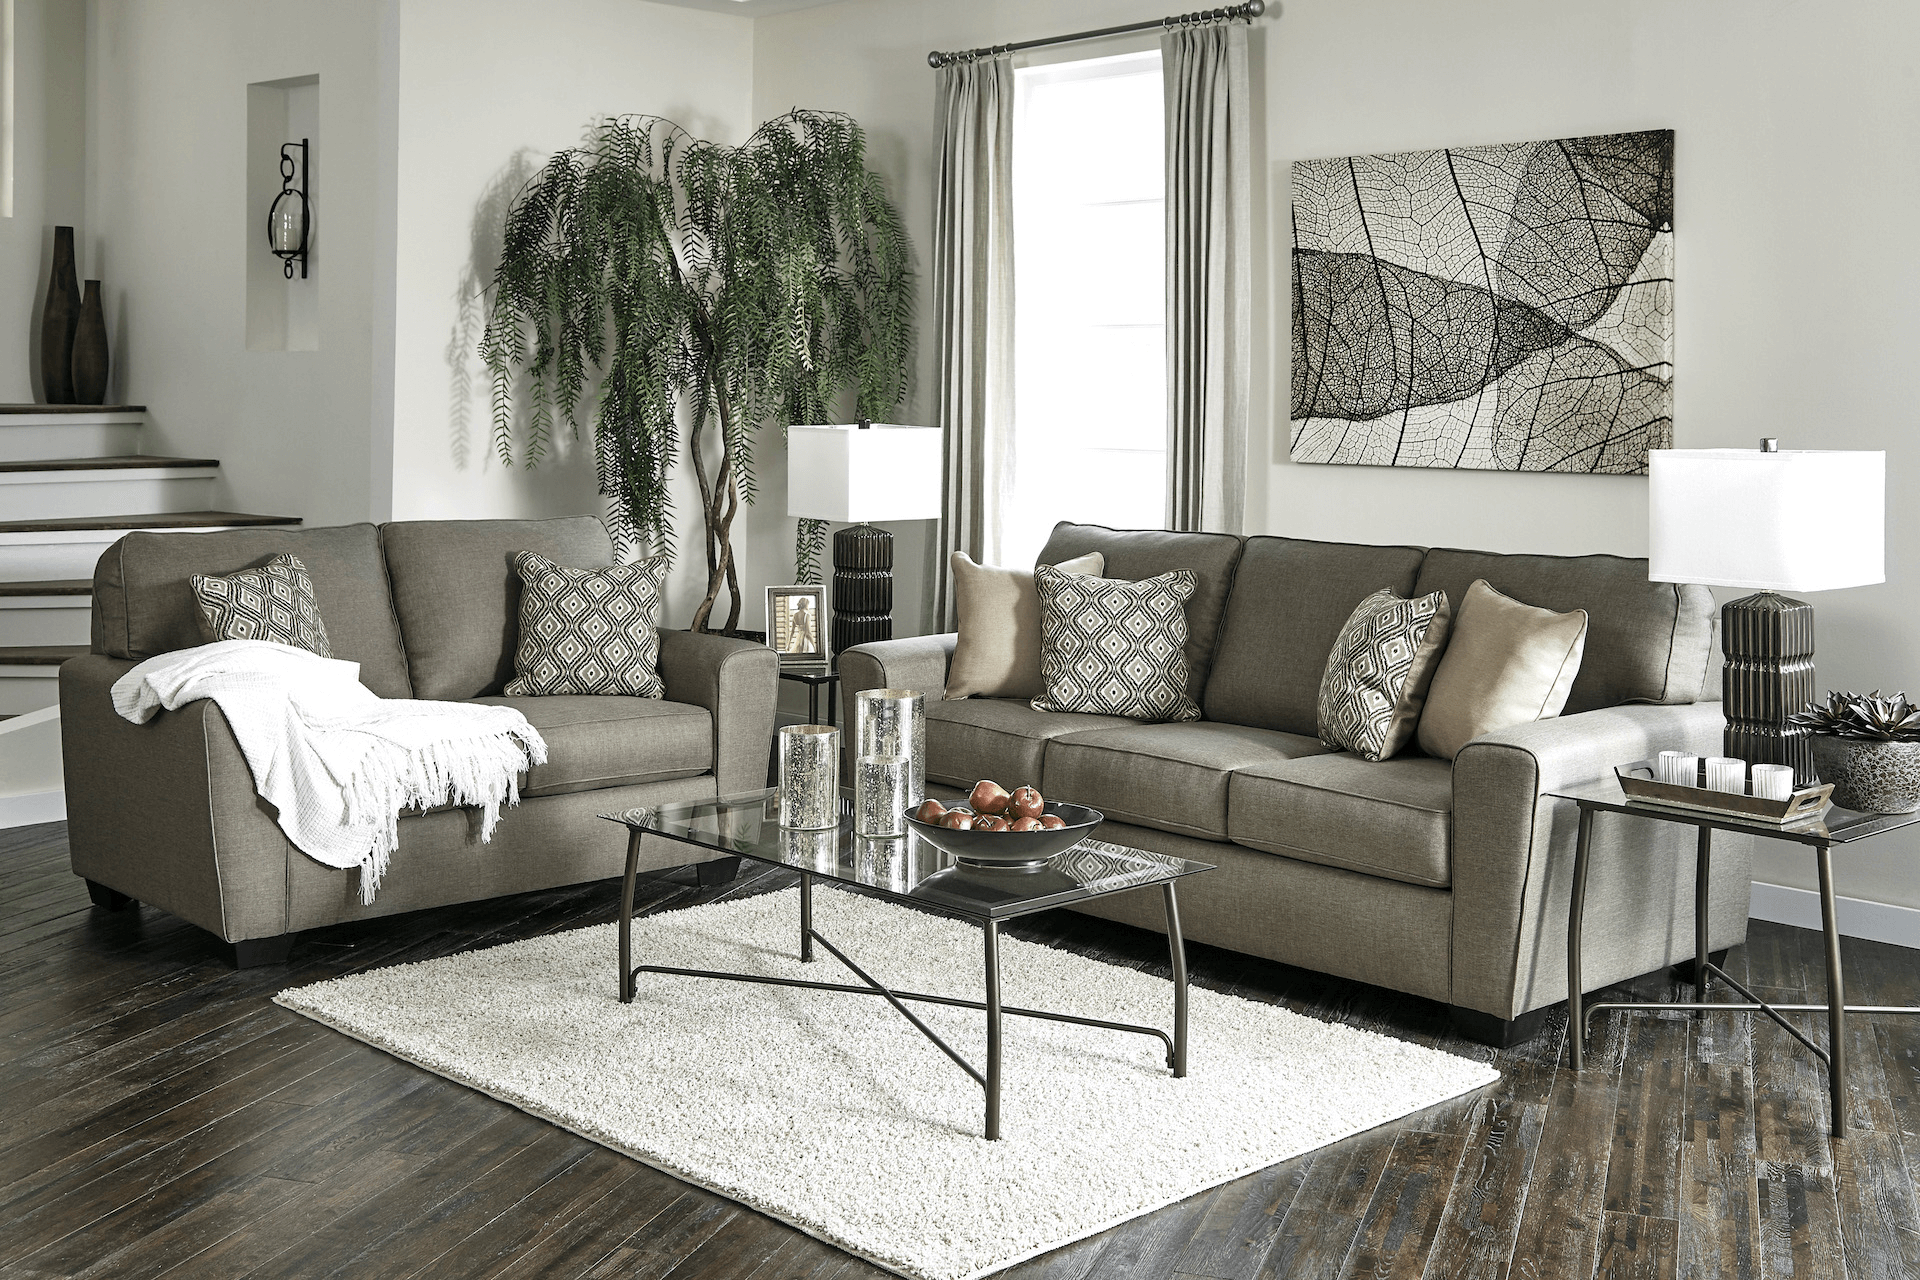 Atlantic_Furniture-Sofa_Sets-91202_SL_w_T004 hi-res